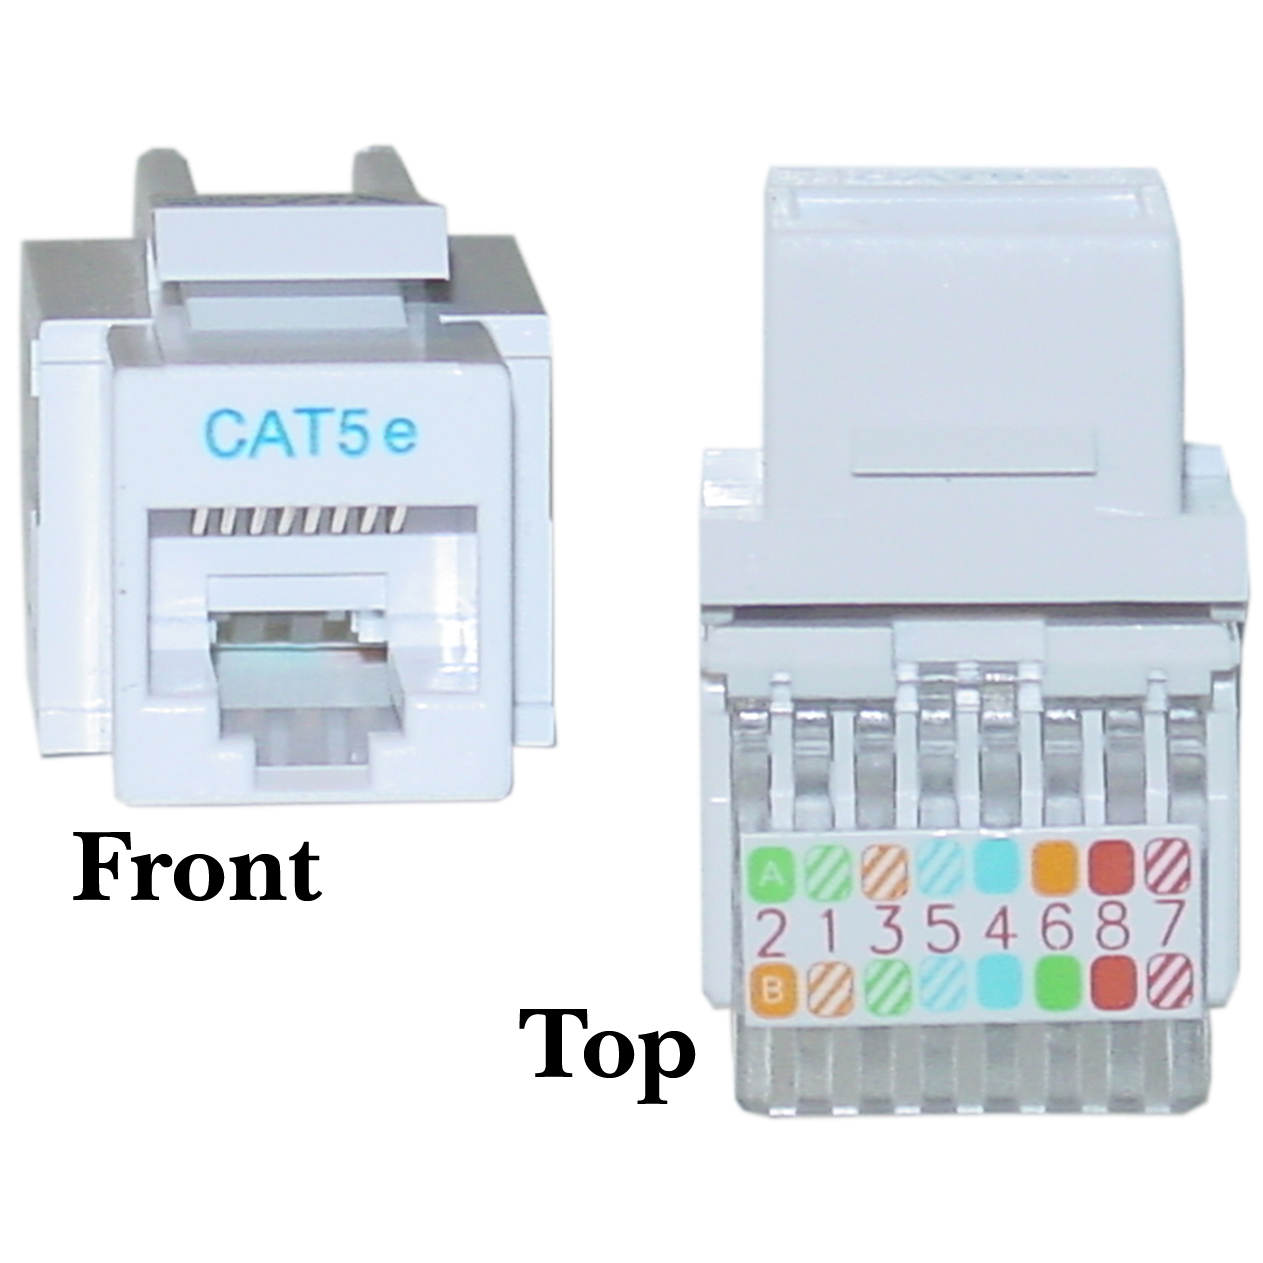 ethernet wiring diagram wall jack ford 2g alternator white cat5e rj45 keystone toolless cablewholesale